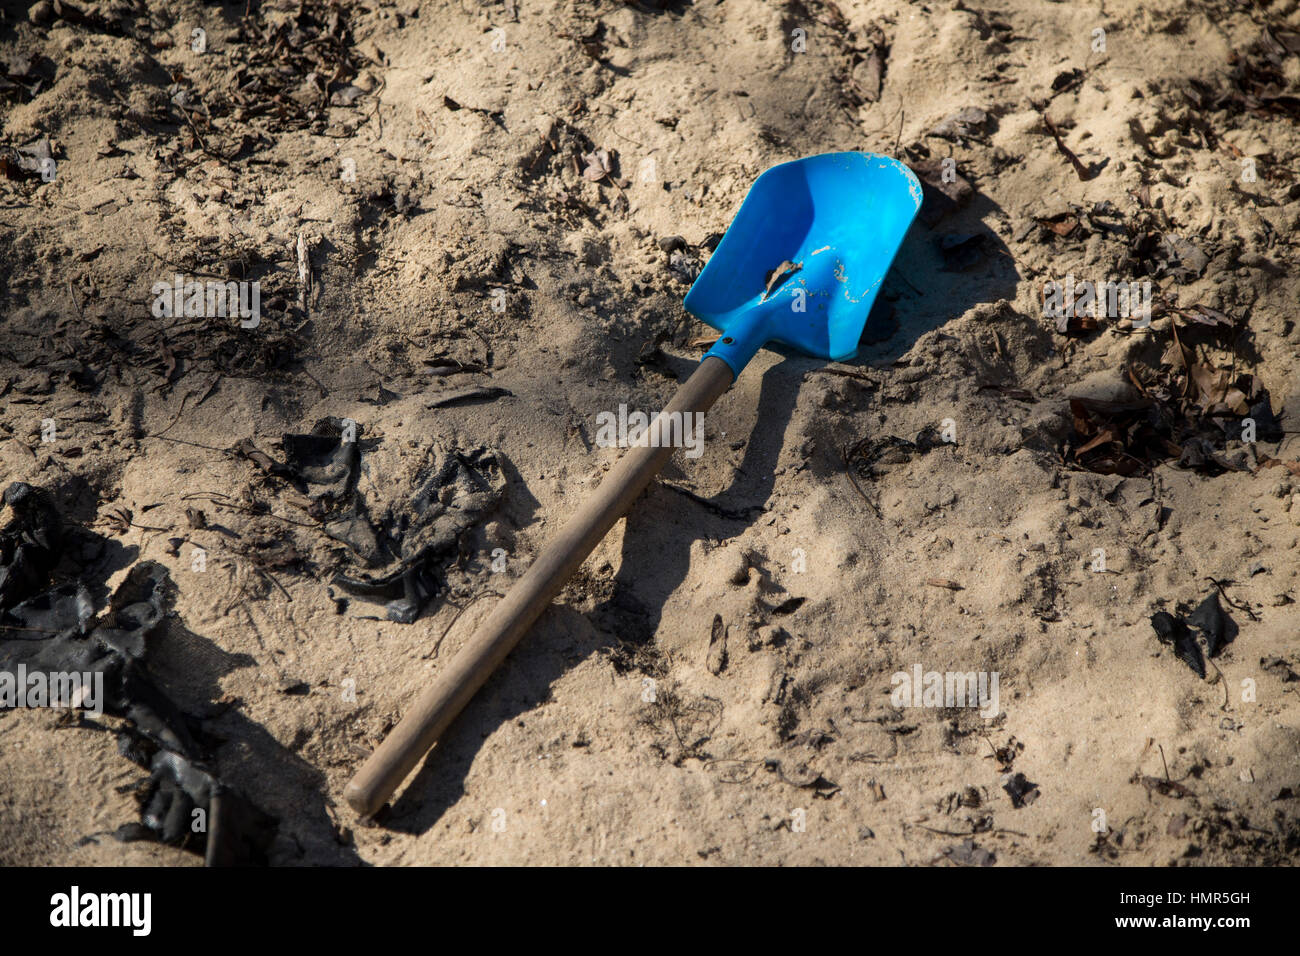 A child's shovel in a sandbox - Stock Image